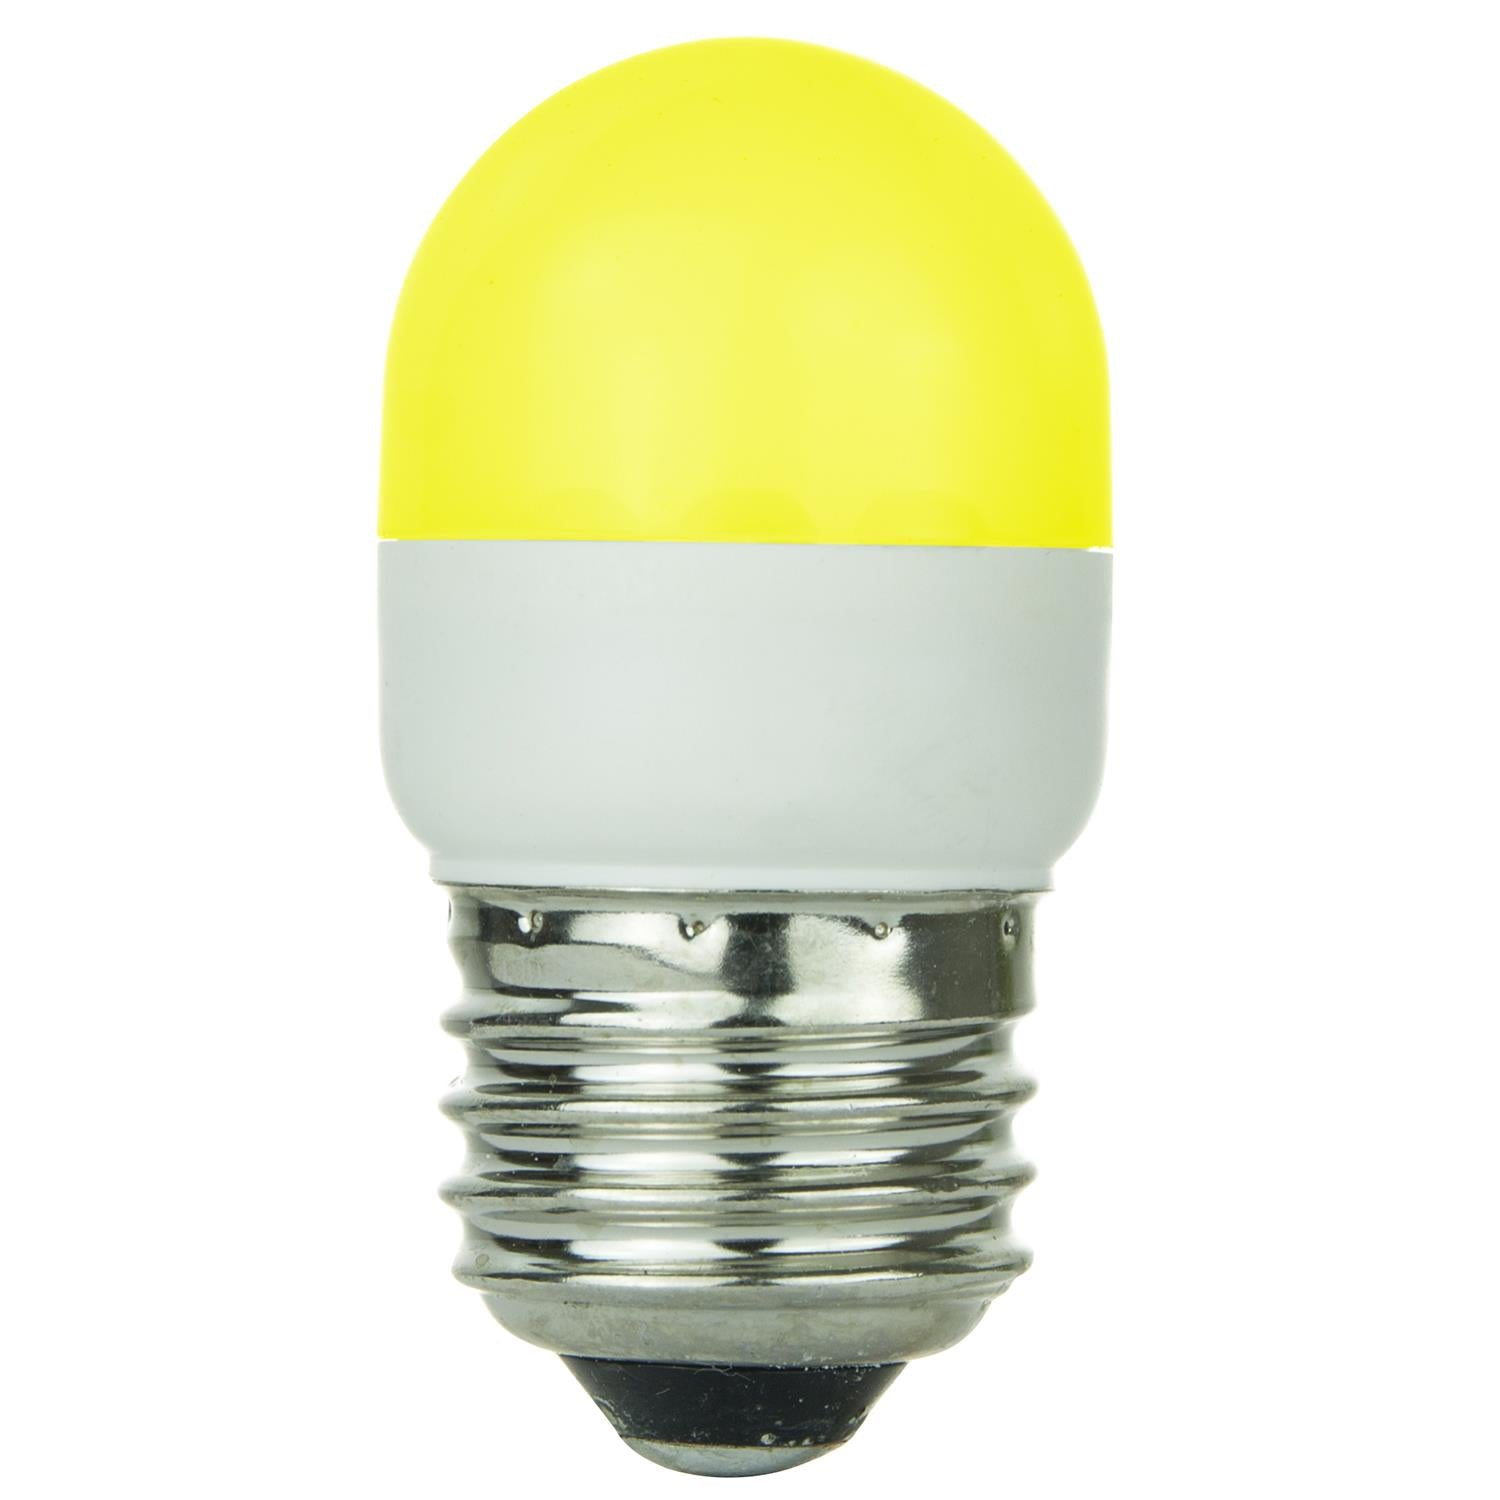 SUNLITE 0.5w Tubular T10 Yellow LED Medium Screw In Base Bulb